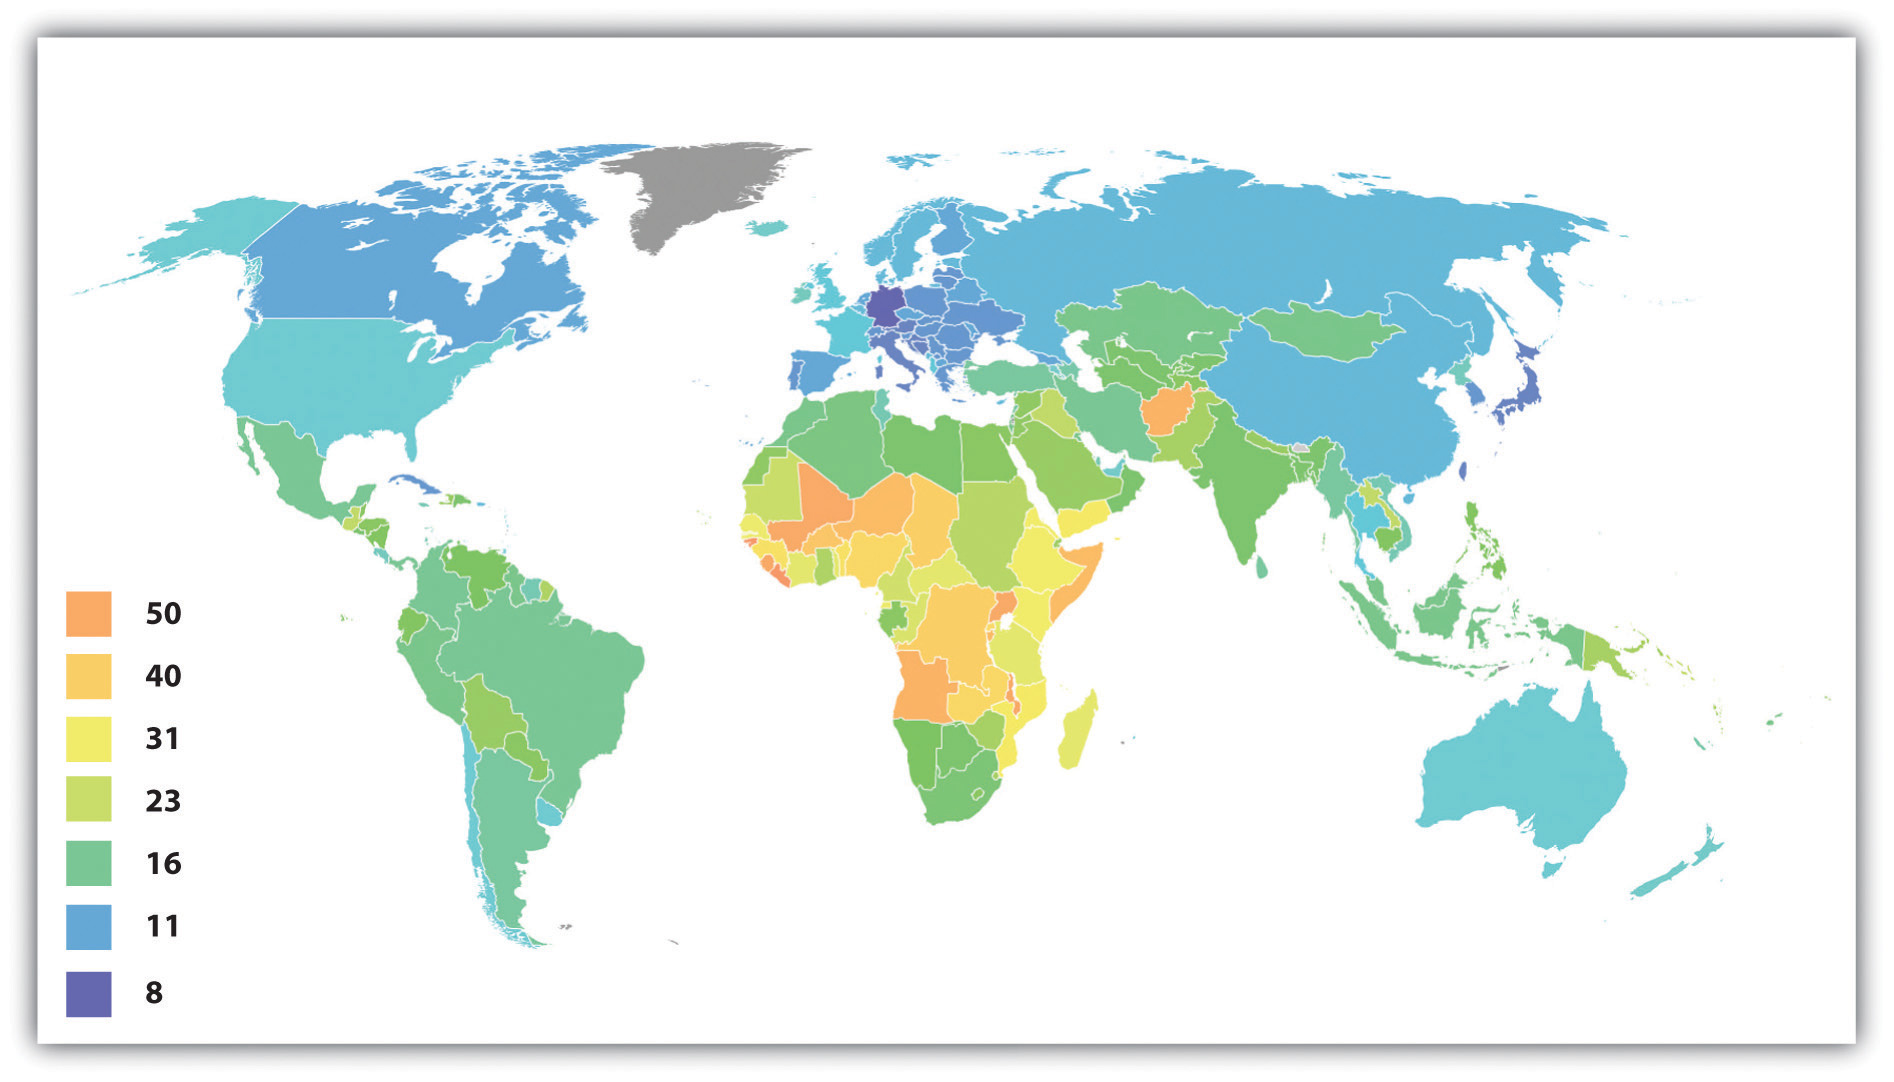 Crude Birth Rates Around the World, 2008 (Number of Births per 1,000 Population)